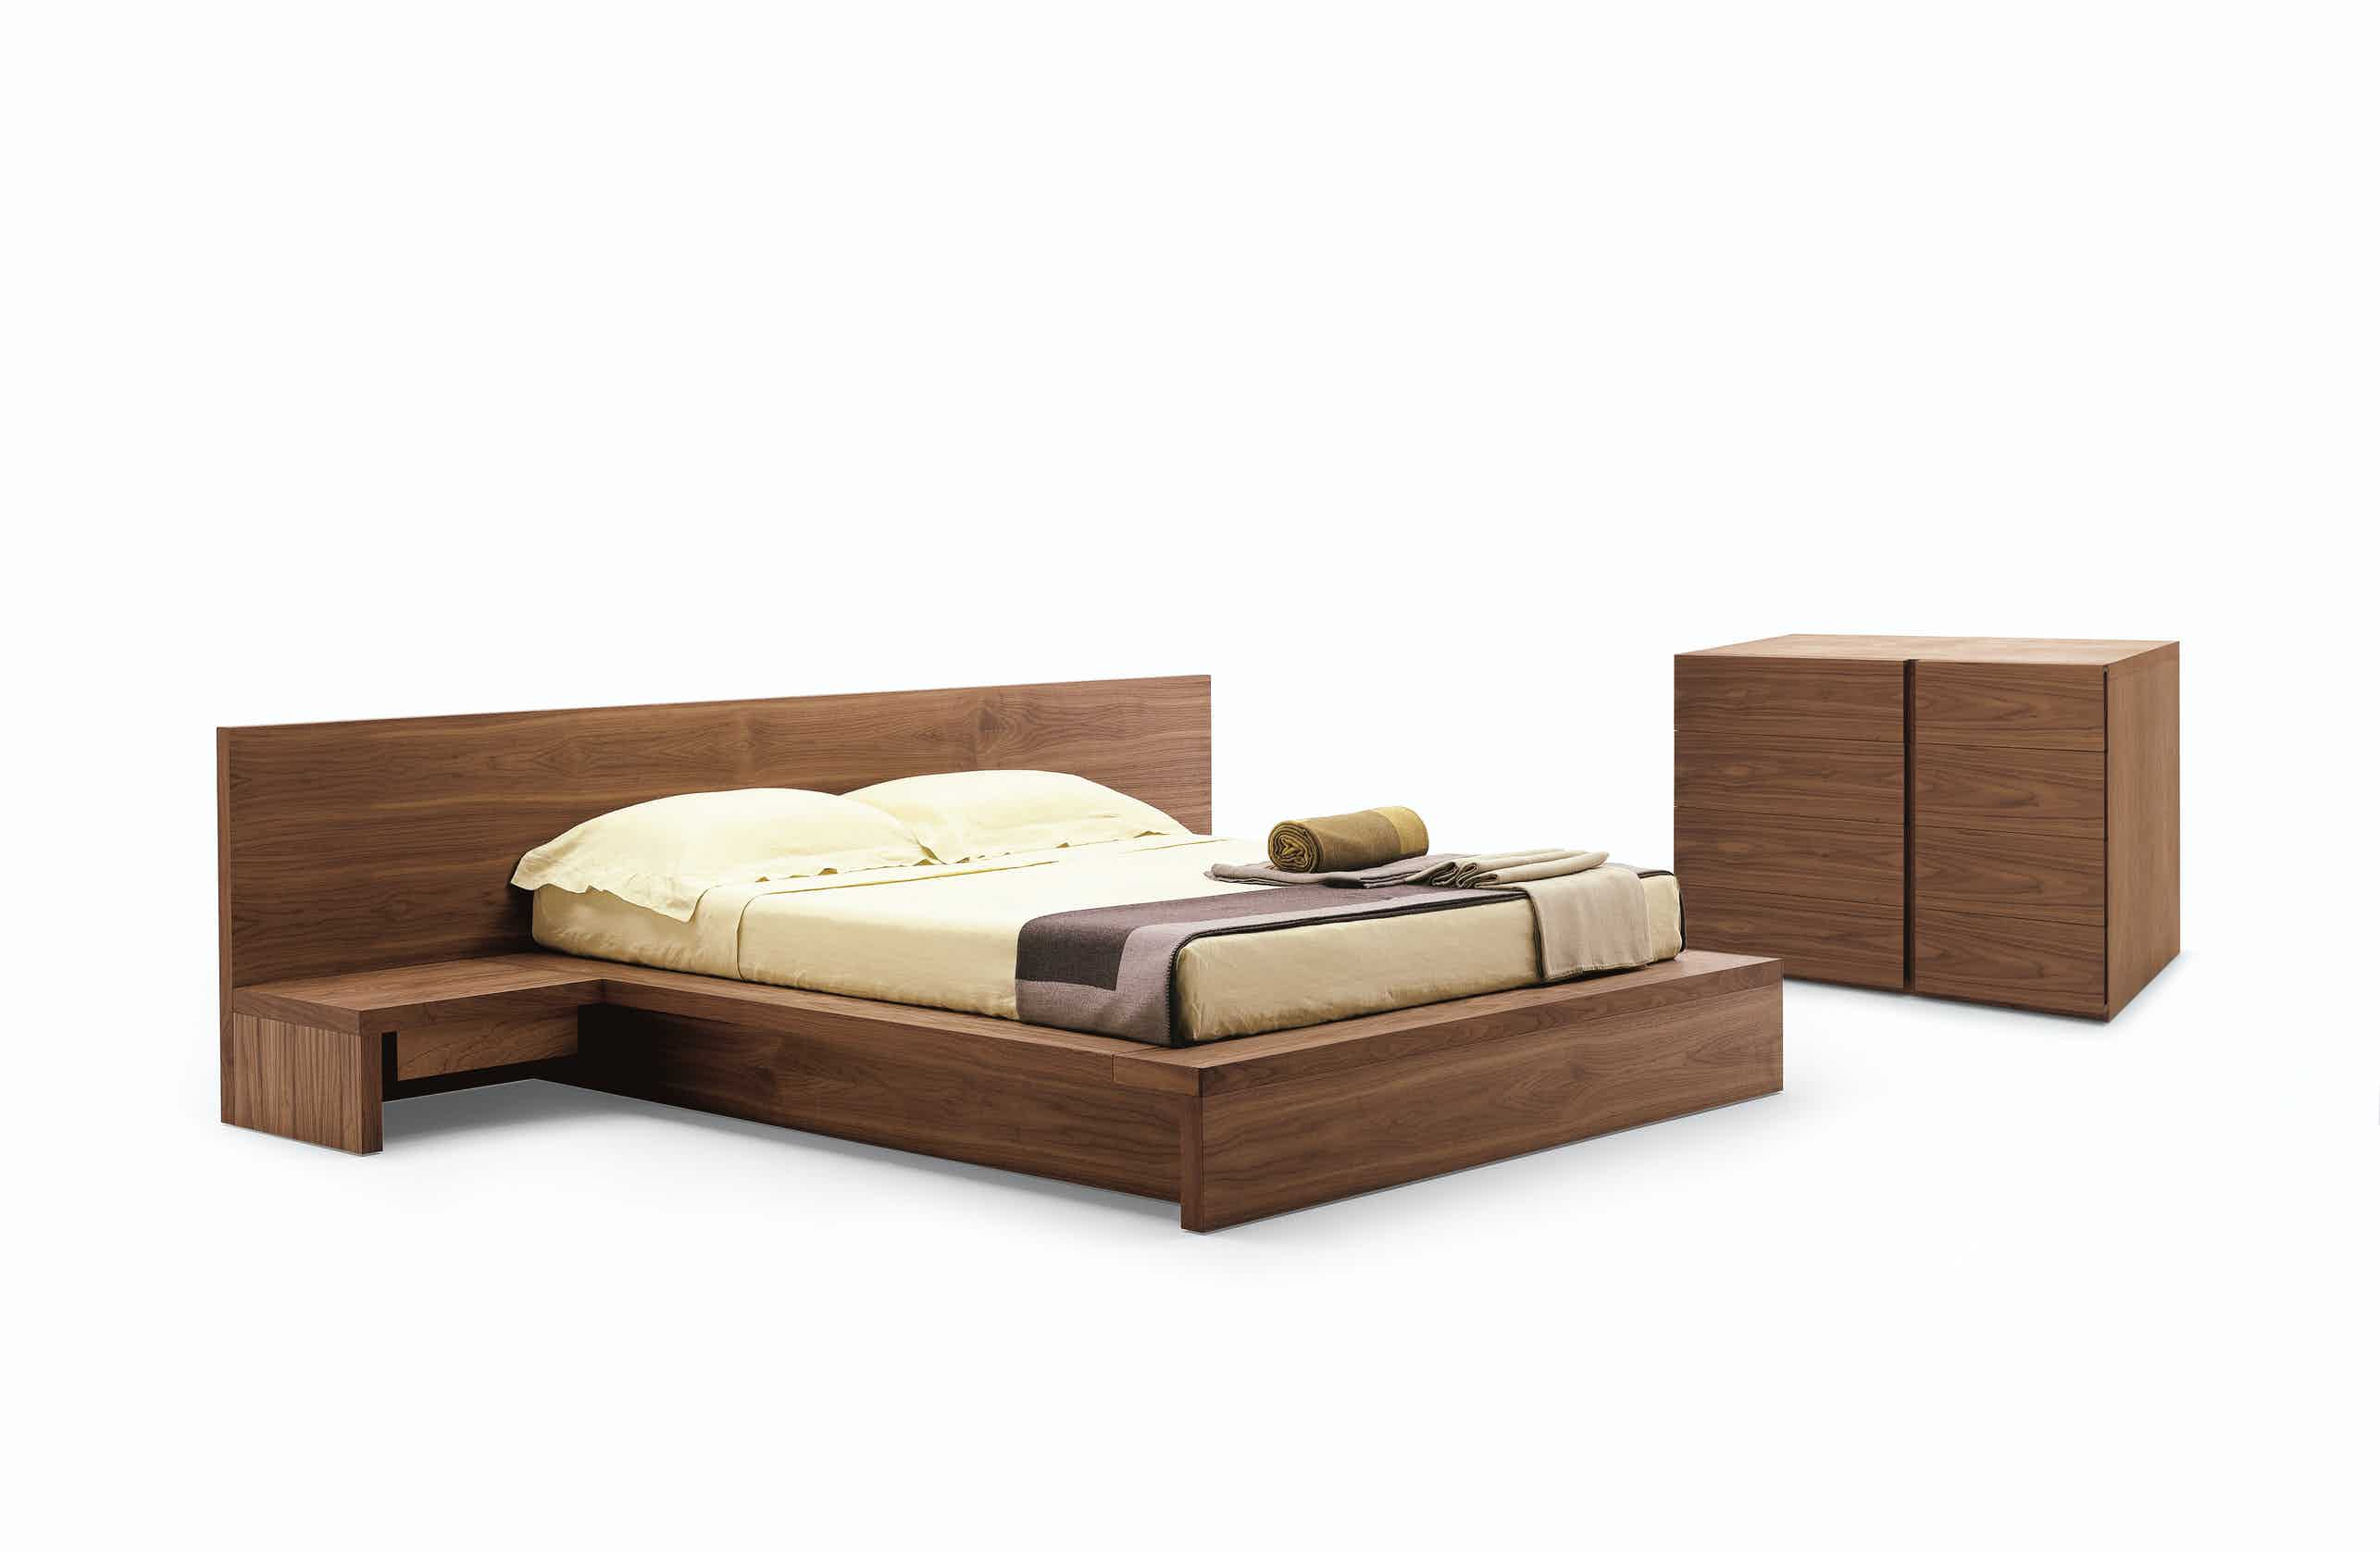 Riva 1920 Como Bed With Dresser